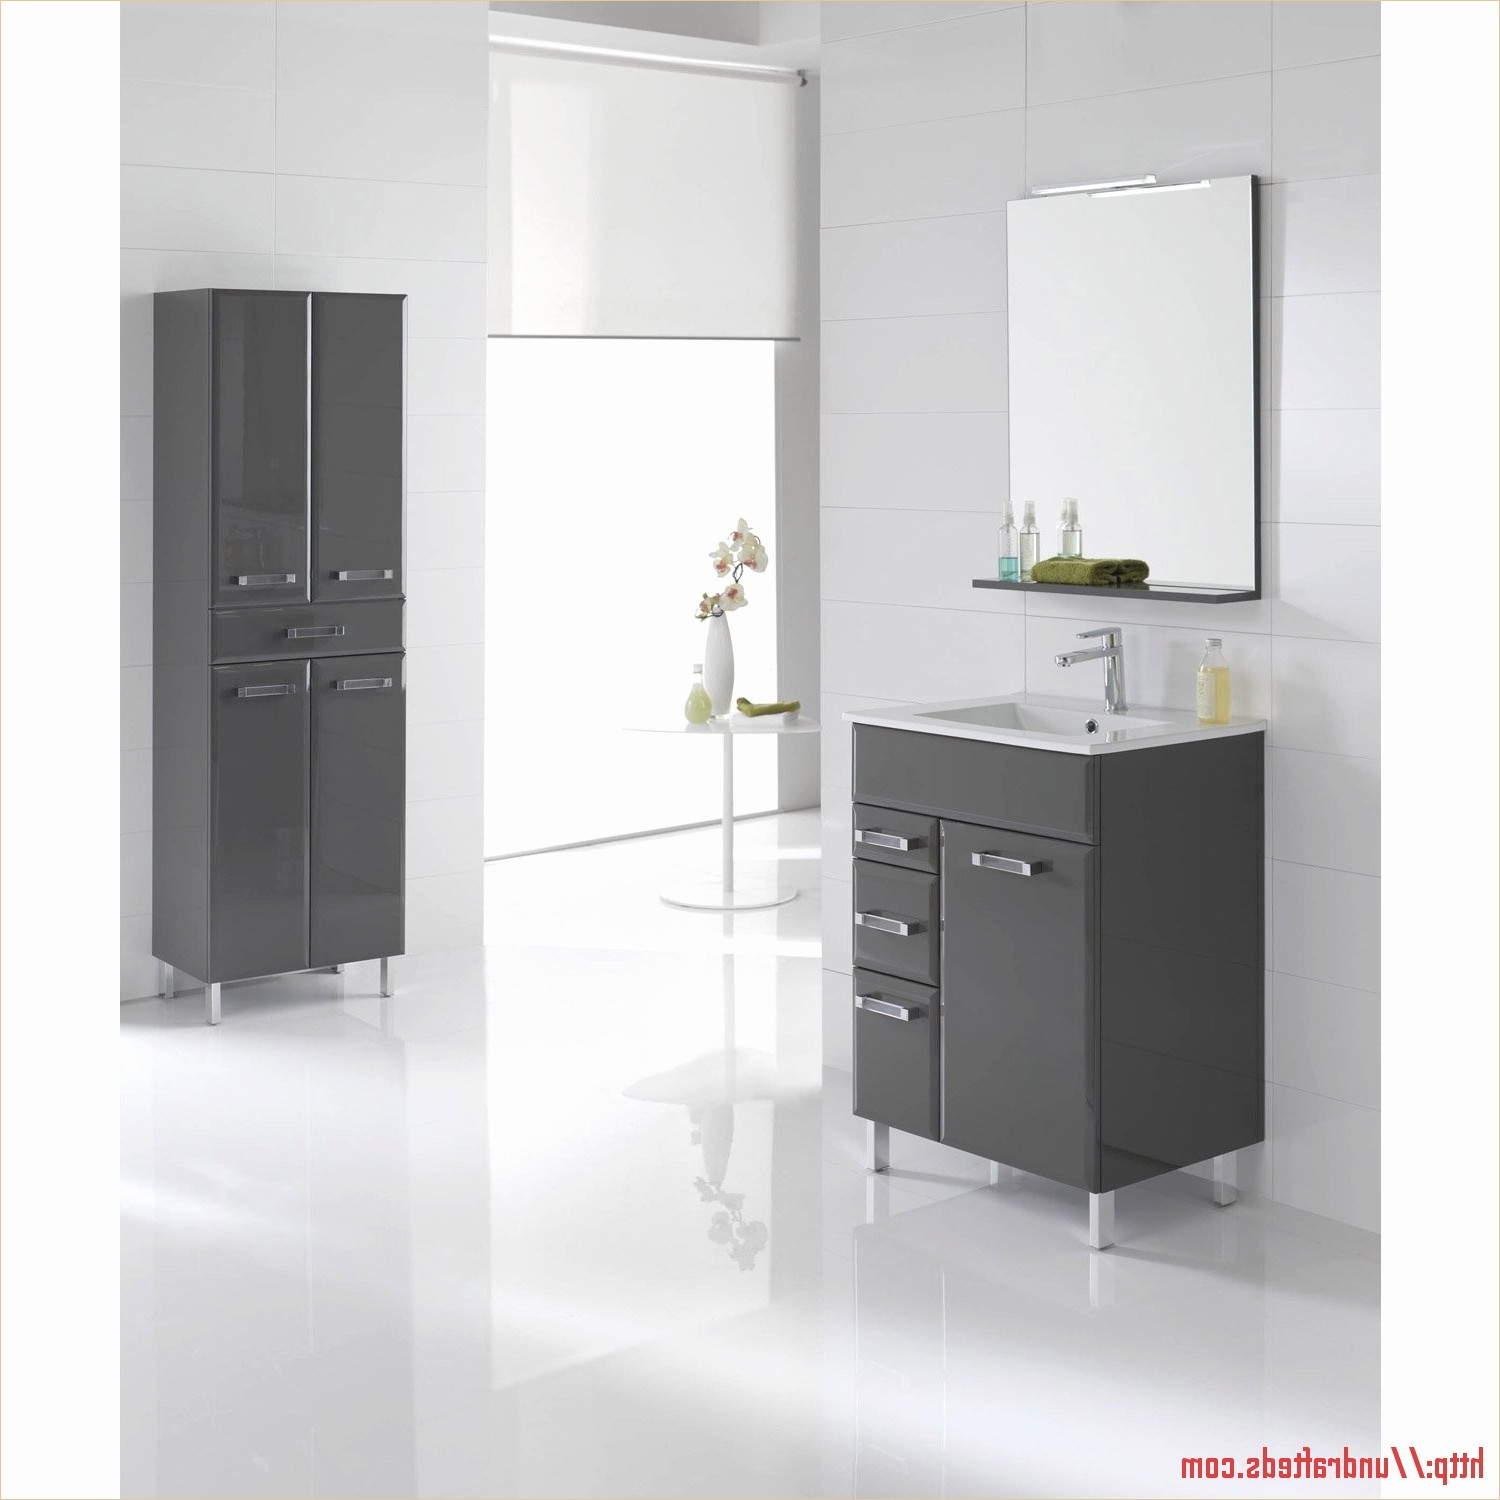 66 beau photographie de meuble lavabo salle de bain brico depot. Black Bedroom Furniture Sets. Home Design Ideas